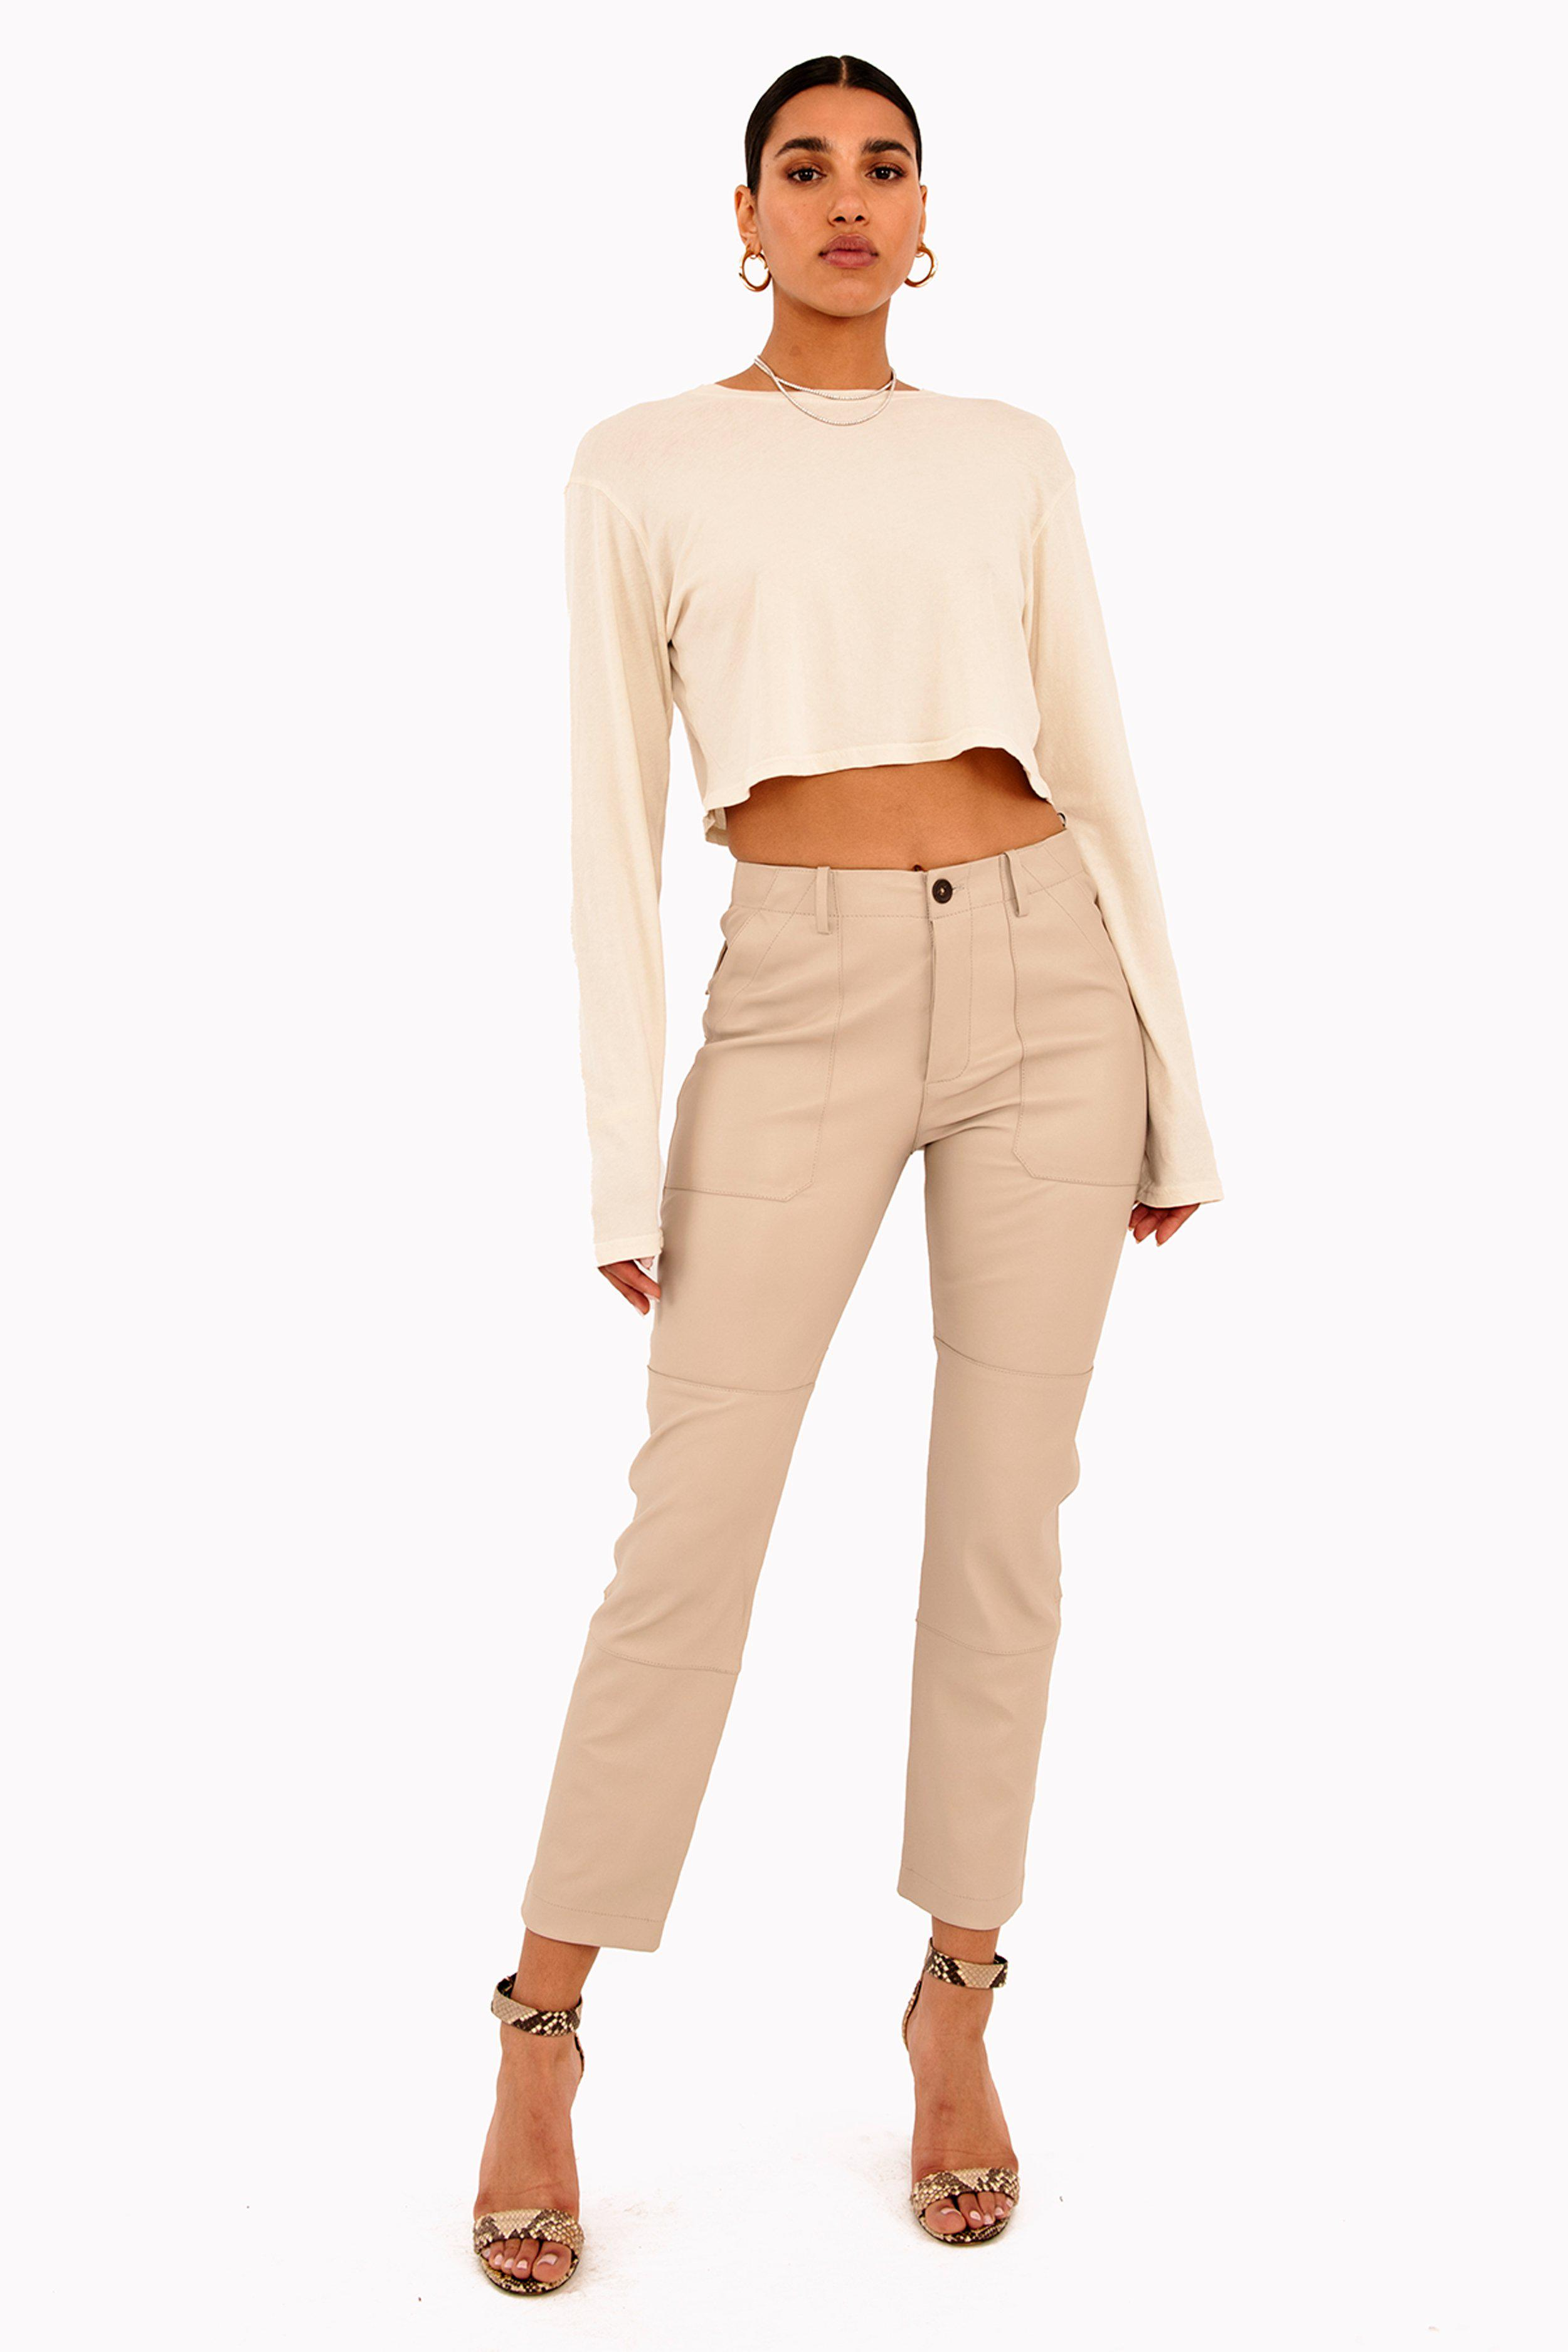 Nude Army Trouser Pant